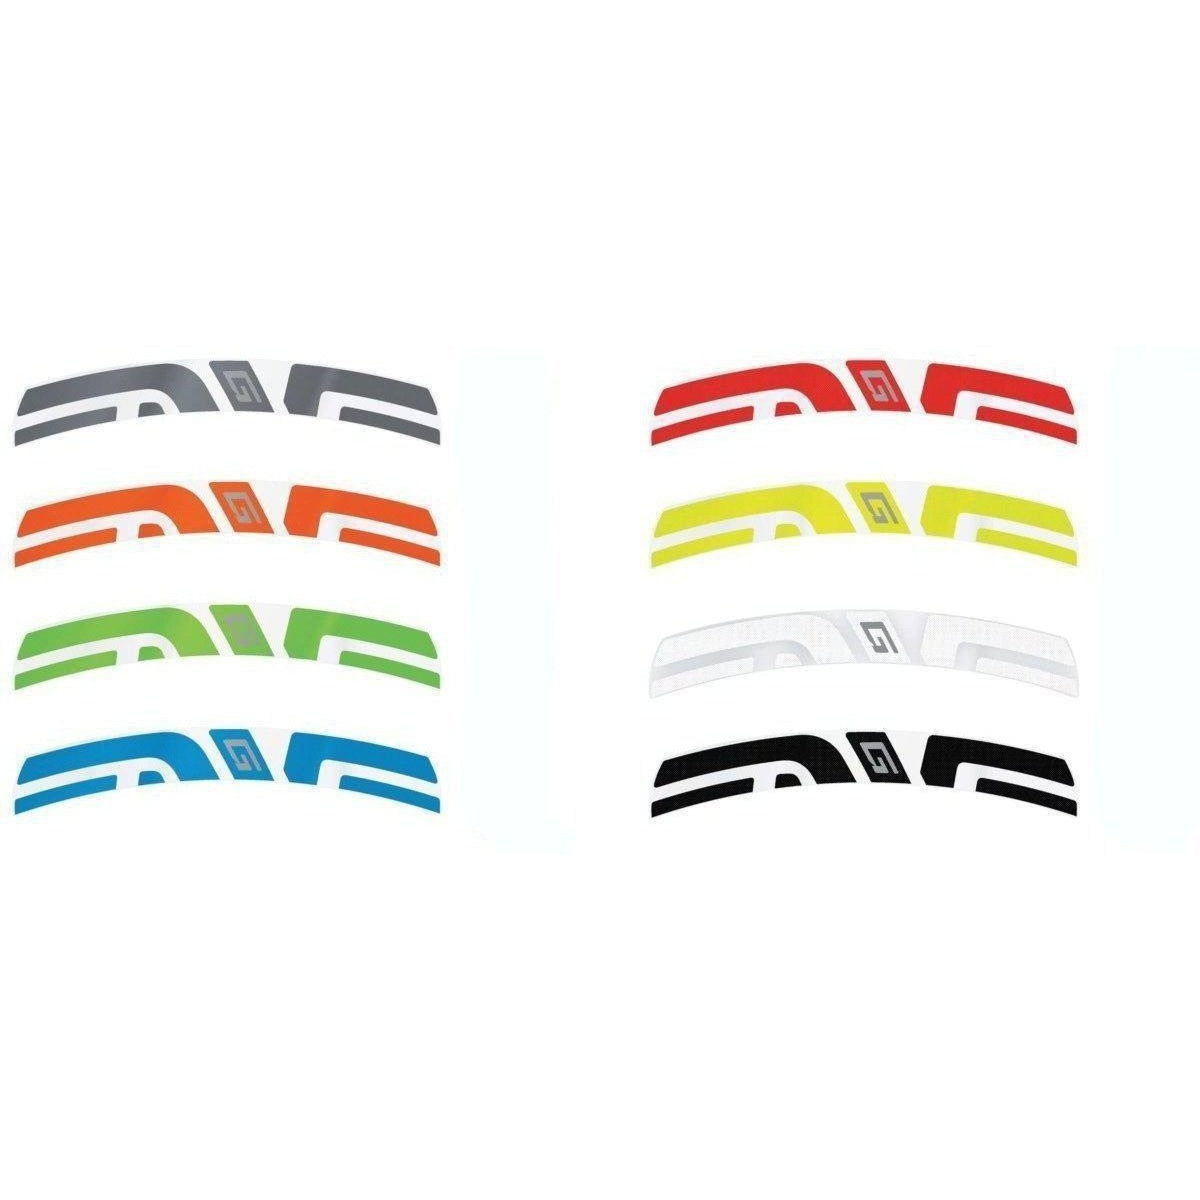 ENVE-ENVE G23 Decals – 6 Pack-Red-G23 x 6-EN700001003203-saddleback-elite-performance-cycling